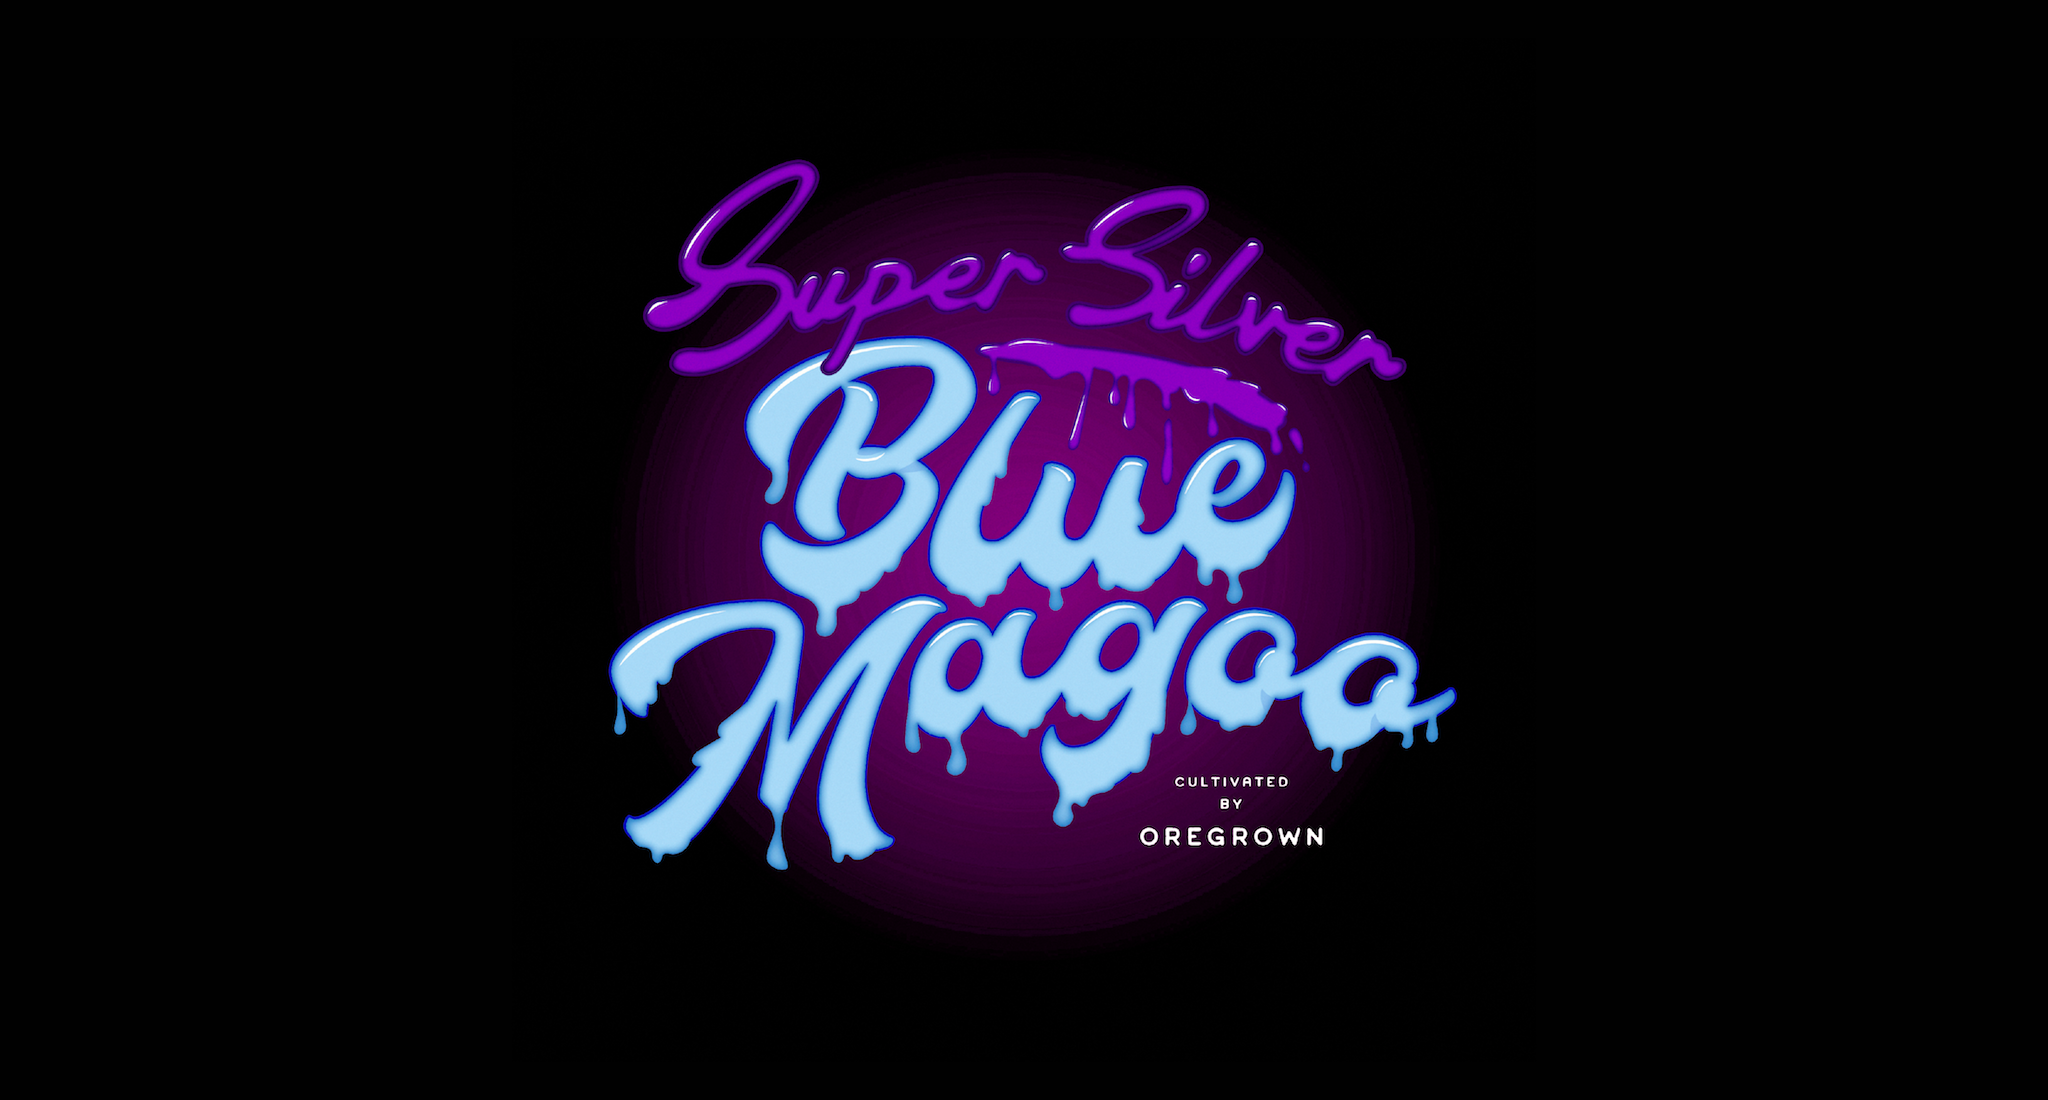 Super Silver Blue Magoo